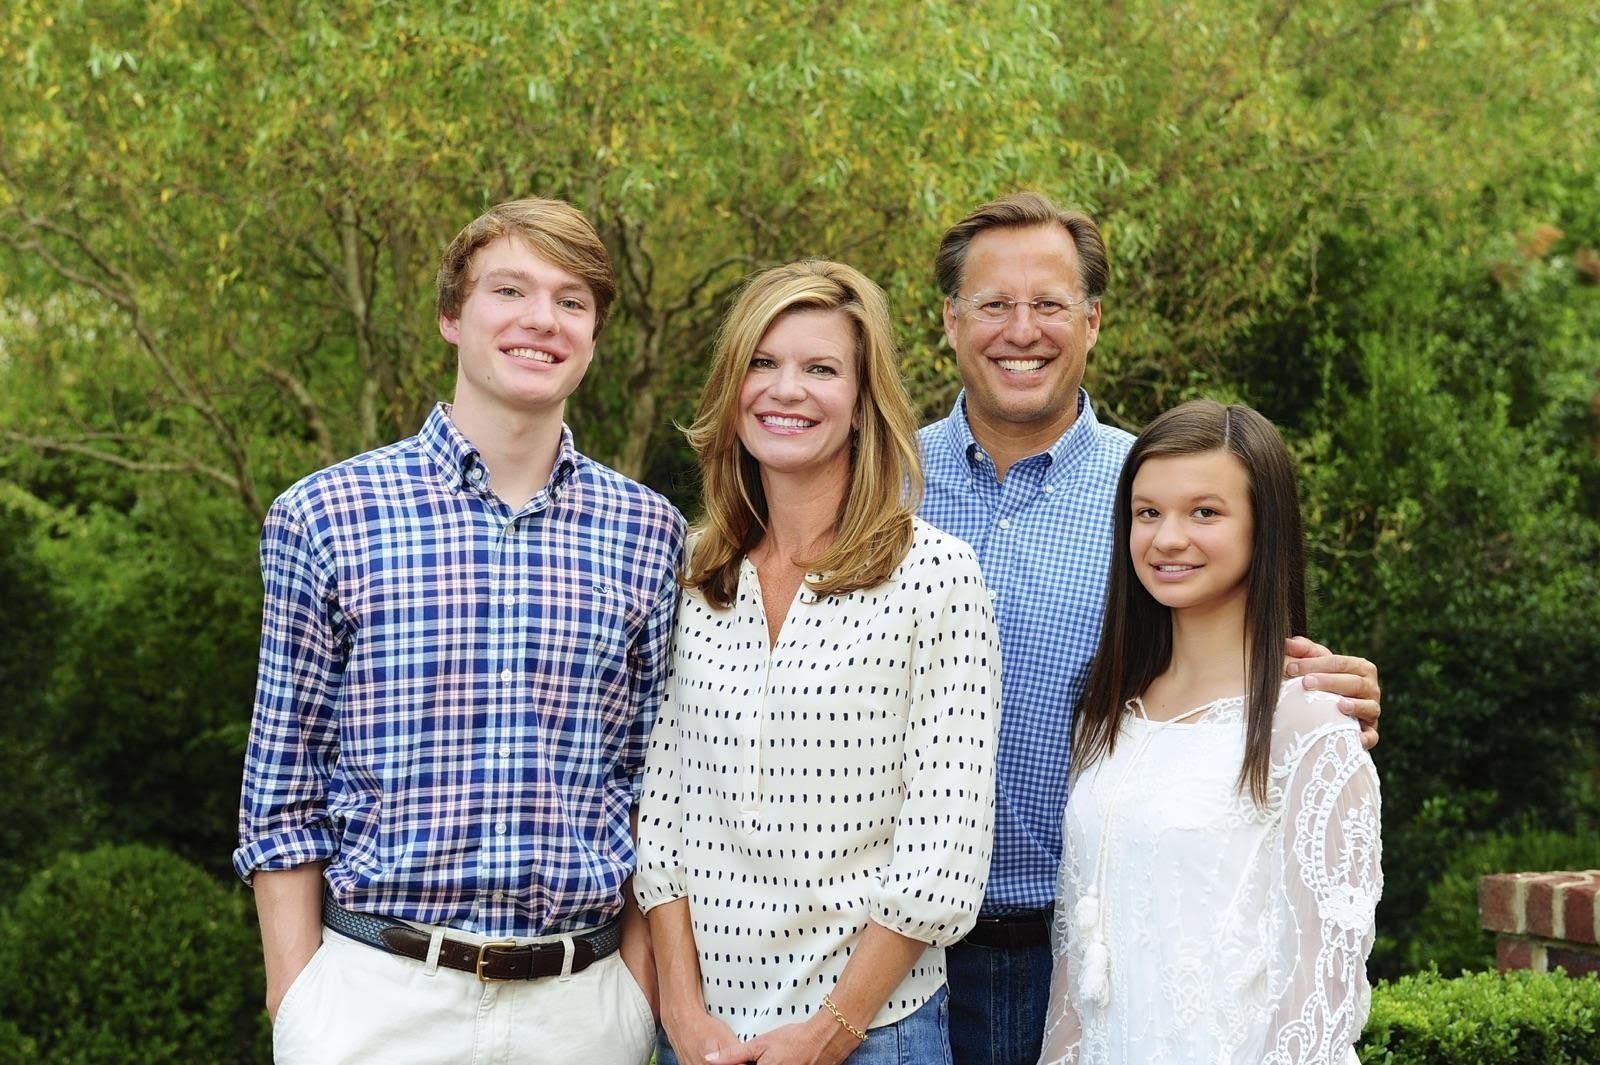 Rep. Dave Brat (R-Va.) and his wife, Laura, with their children.